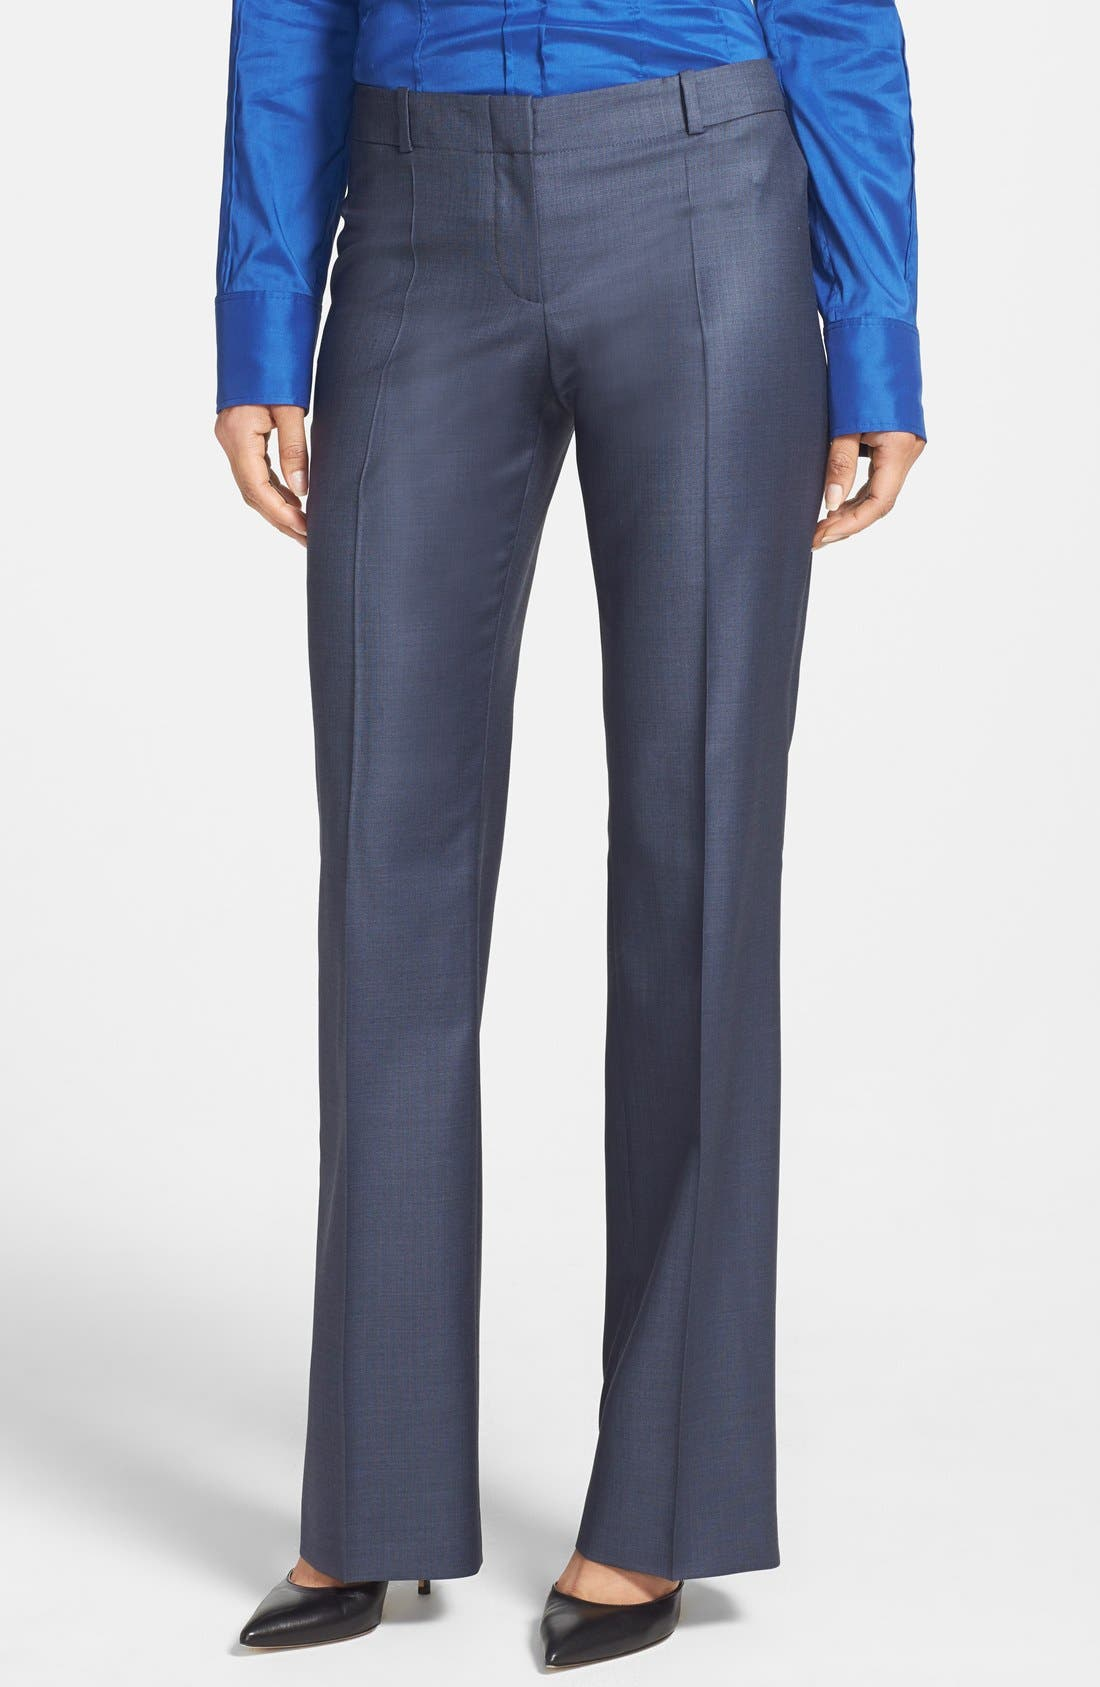 'Temuna' Wool Blend Suiting Trousers,                         Main,                         color, Electric Blue Fantasy Melange